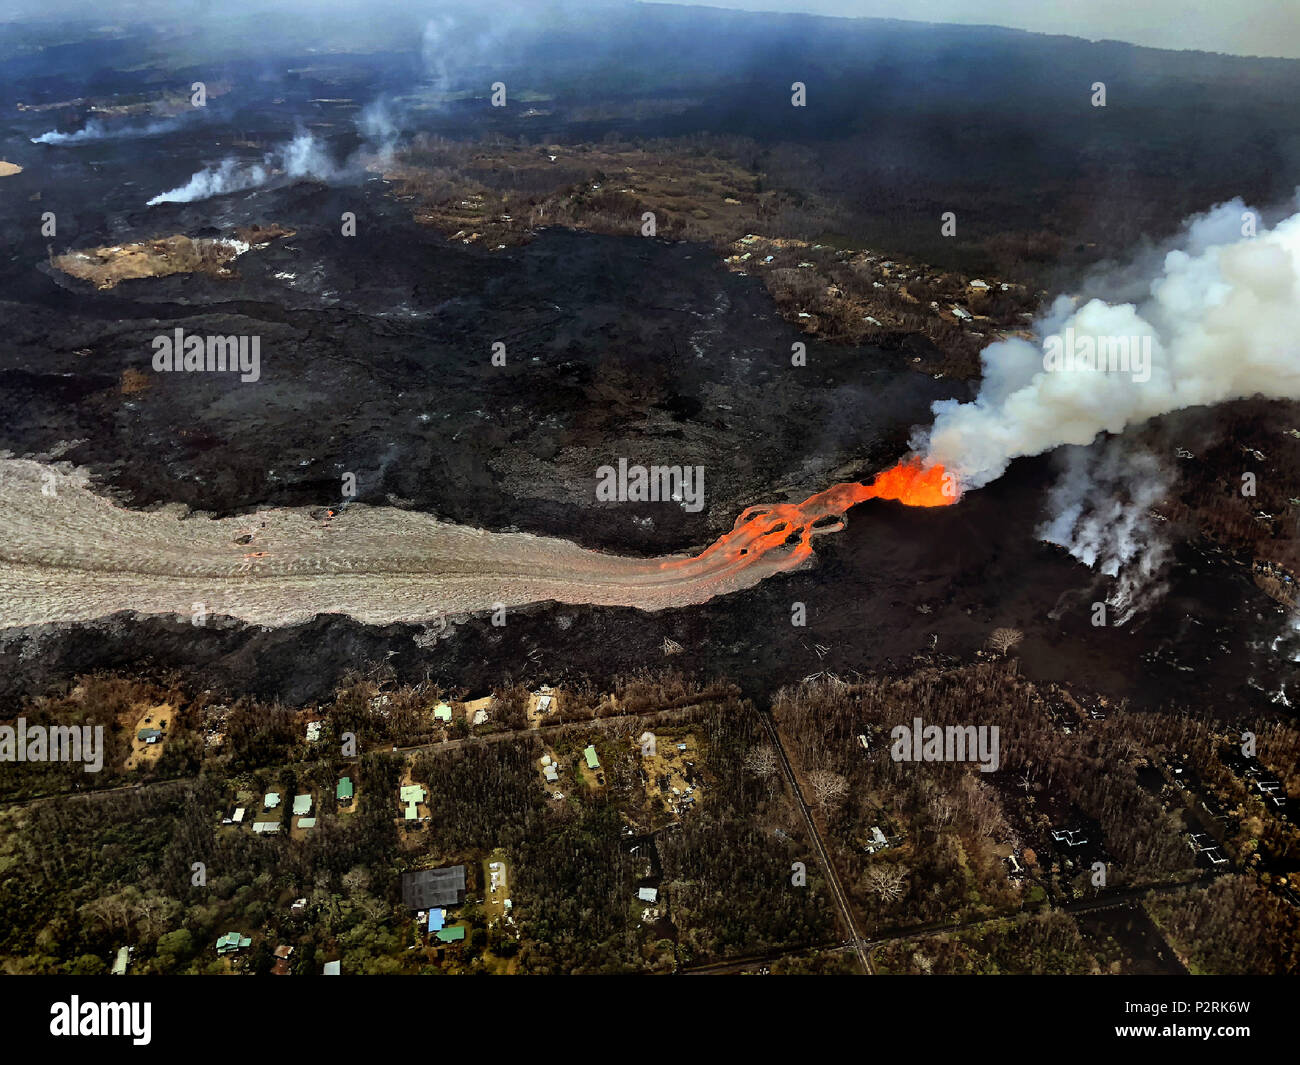 Pahoa, Hawaii, USA. 10th June, 2018. The Kilauea Volcano east rift zone eruption continues as seen from the air mainly from Fissure 8 and forms a river of lava flowing down from Leilani Estates to Kapoho on Sunday. Credit: L.E. Baskow/ZUMA Wire/Alamy Live News - Stock Image